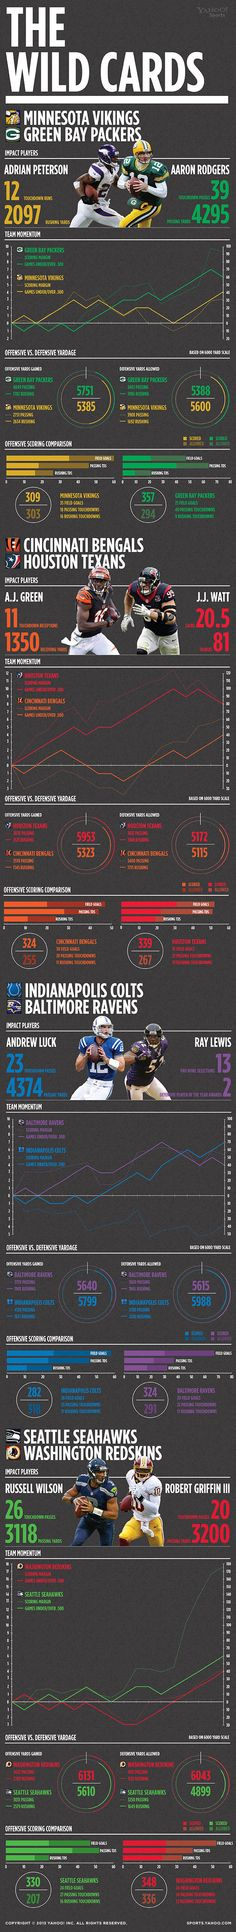 Infographic: NFL wild cards, inside the numbers - Yahoo! Sports